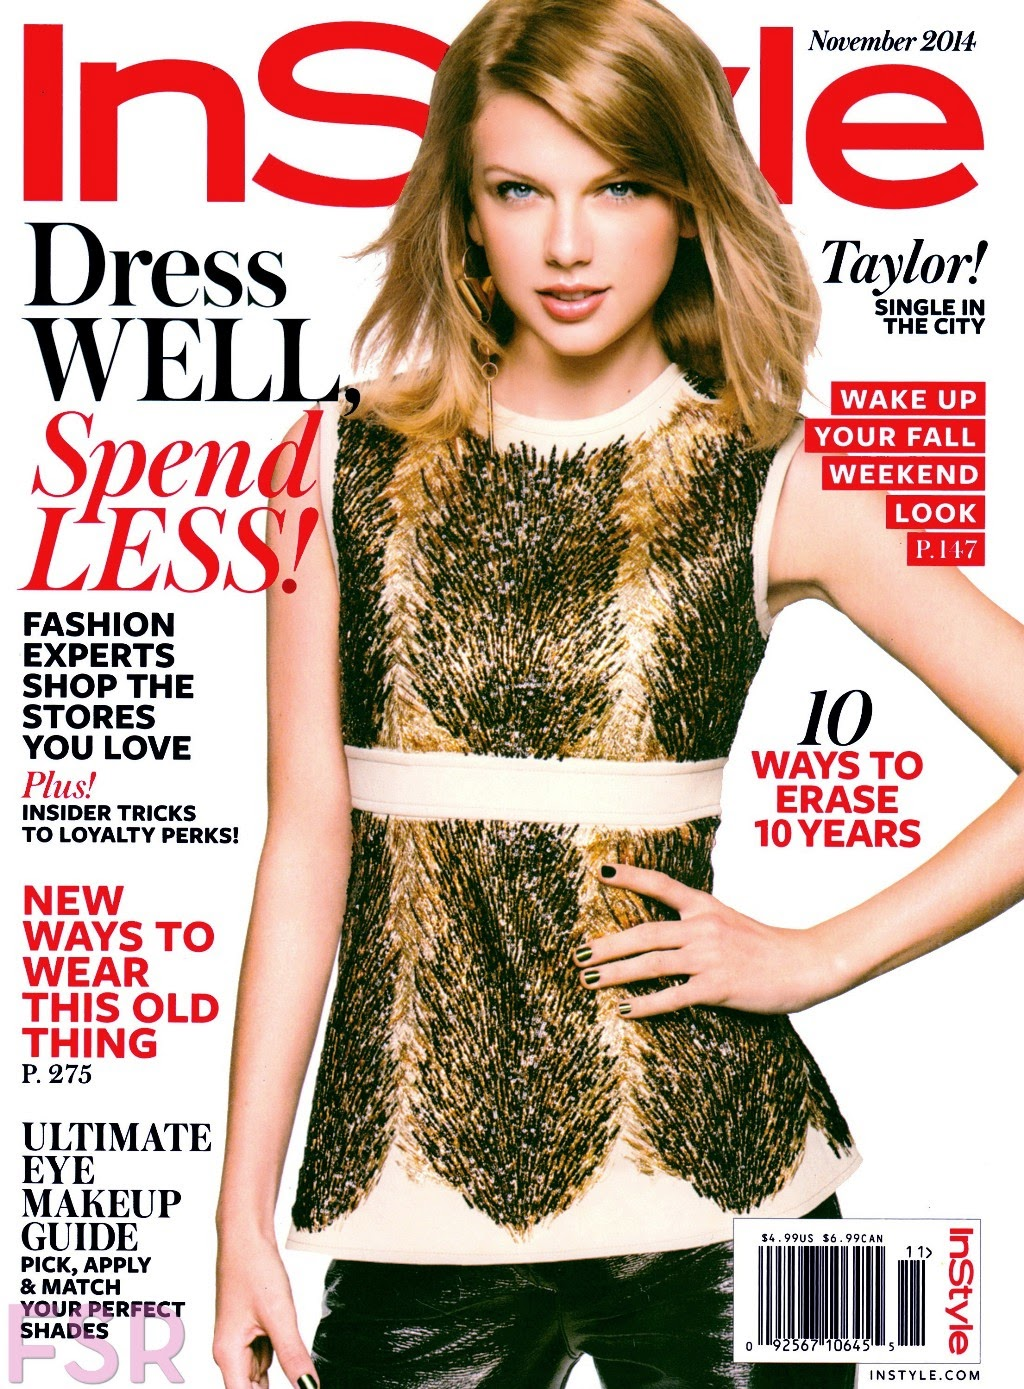 arts cross stitch taylor swift instyle magazine november 2014. Black Bedroom Furniture Sets. Home Design Ideas